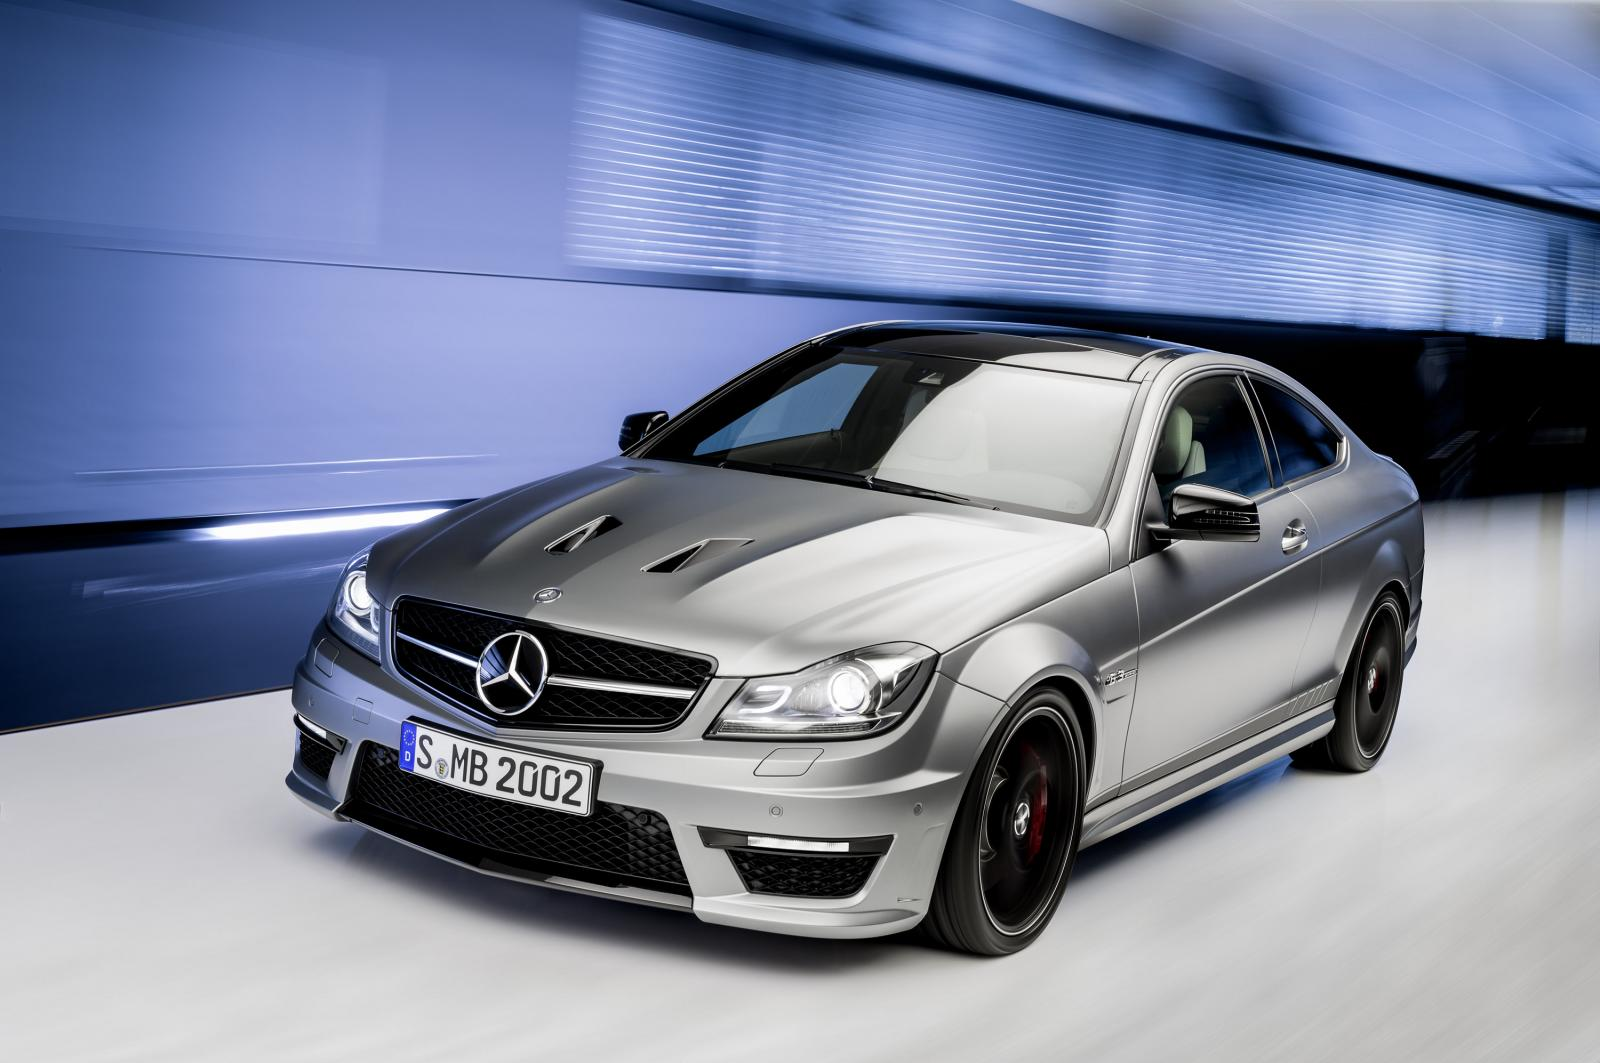 2014 mercedes benz c63 amg edition 507 released video for Mercedes benz 2014